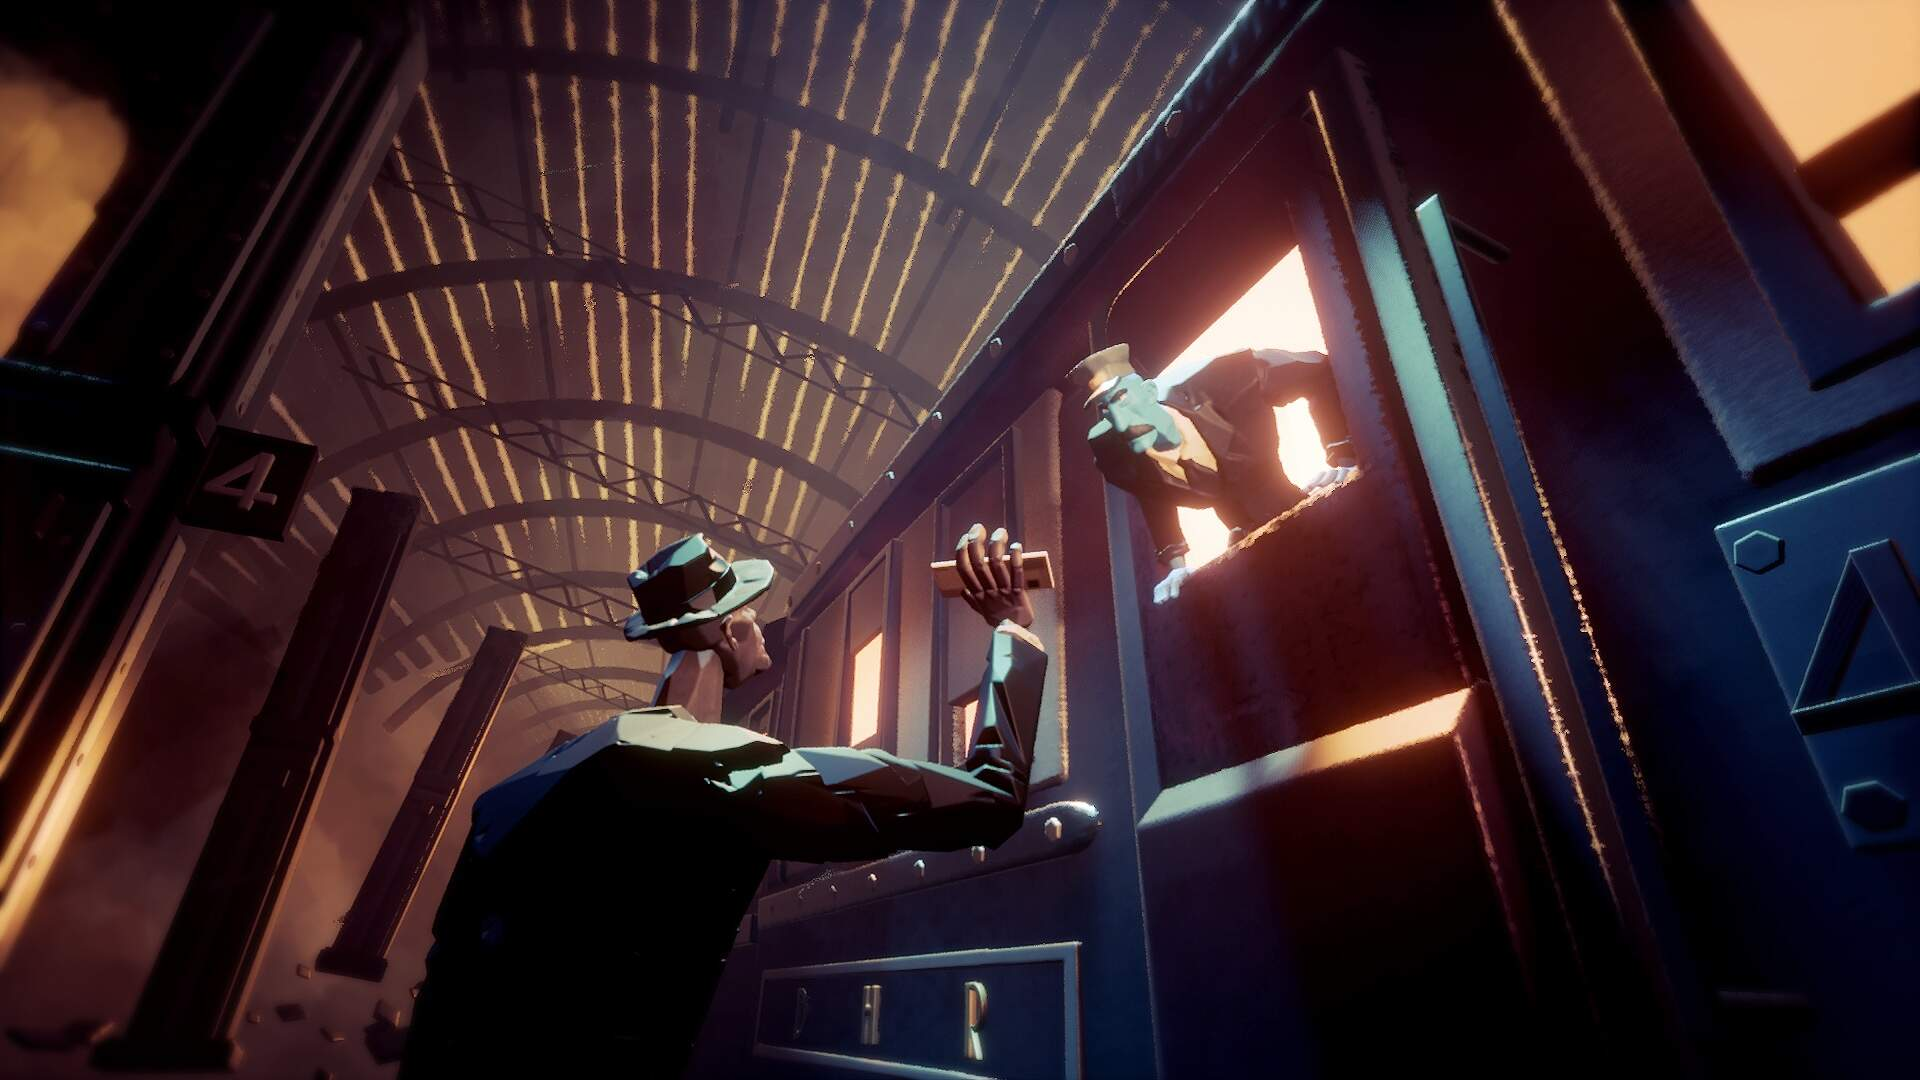 The Early Access Period for Dreams Is Coming to an End Soon